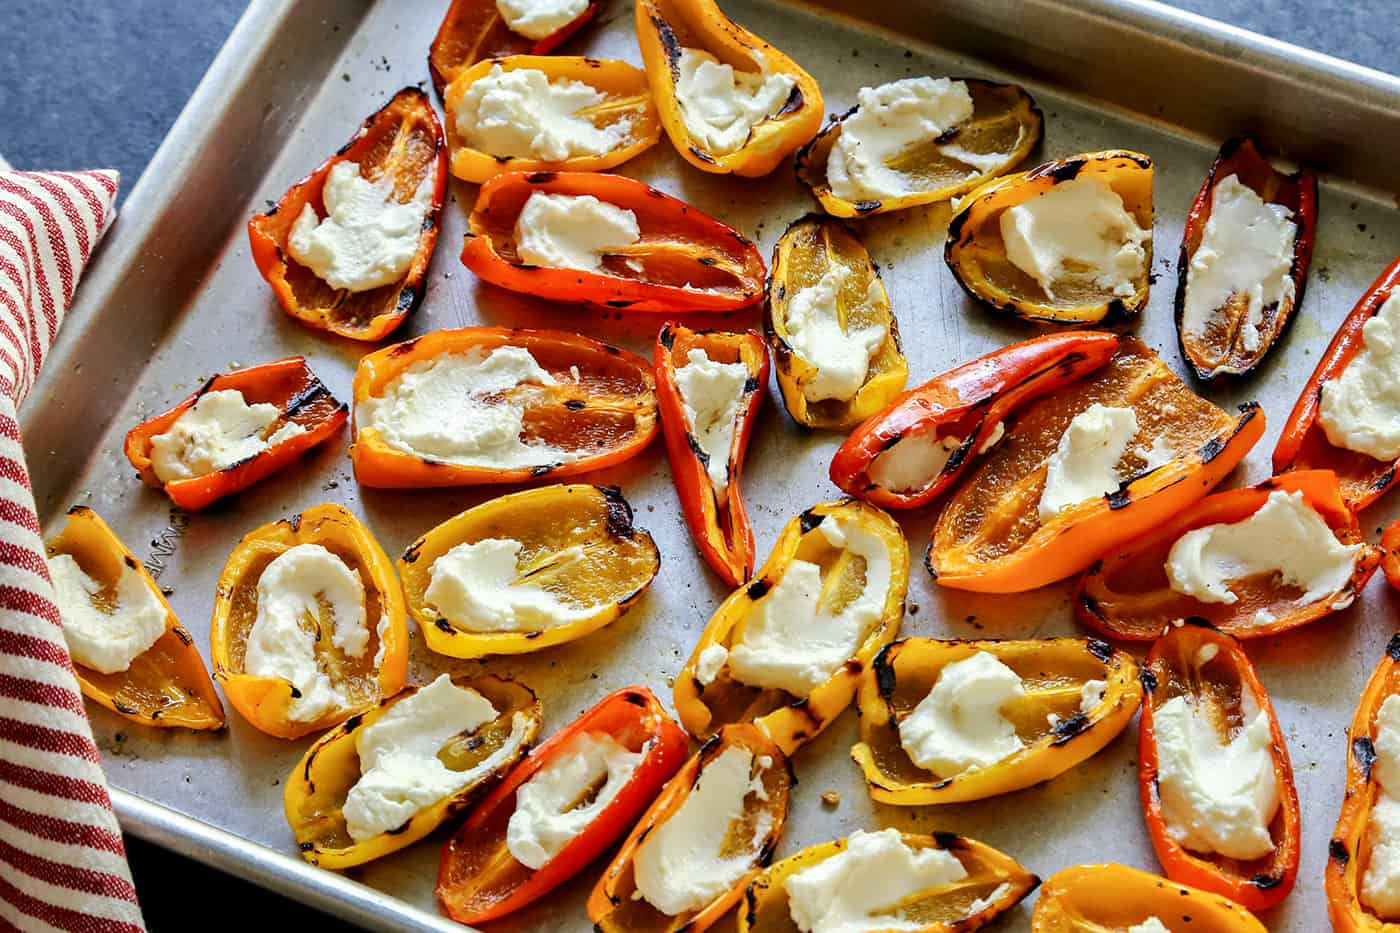 A sheet pan of Grilled Mini Sweet Peppers filled with Goat Cheese